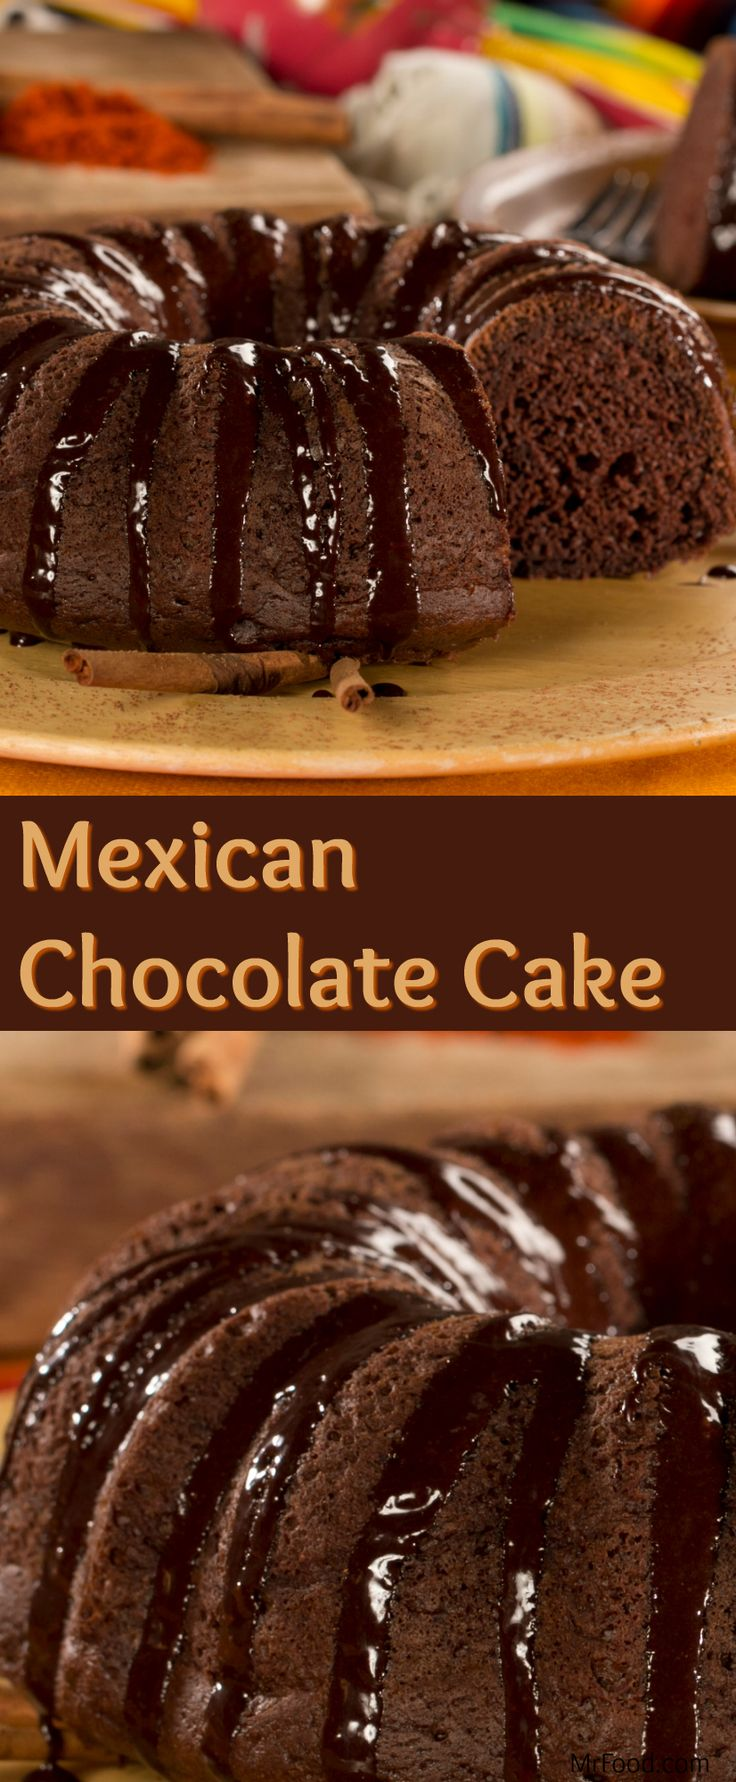 Add a kick to delicious chocolate cake by making our recipe for Mexican Chocolate Cake. Start with a boxed cake mix and add cinnamon and cayenne pepper for a perfectly sweet and spiced chocolate cake. This may very well become one of your new favorite chocolate desserts recipes!